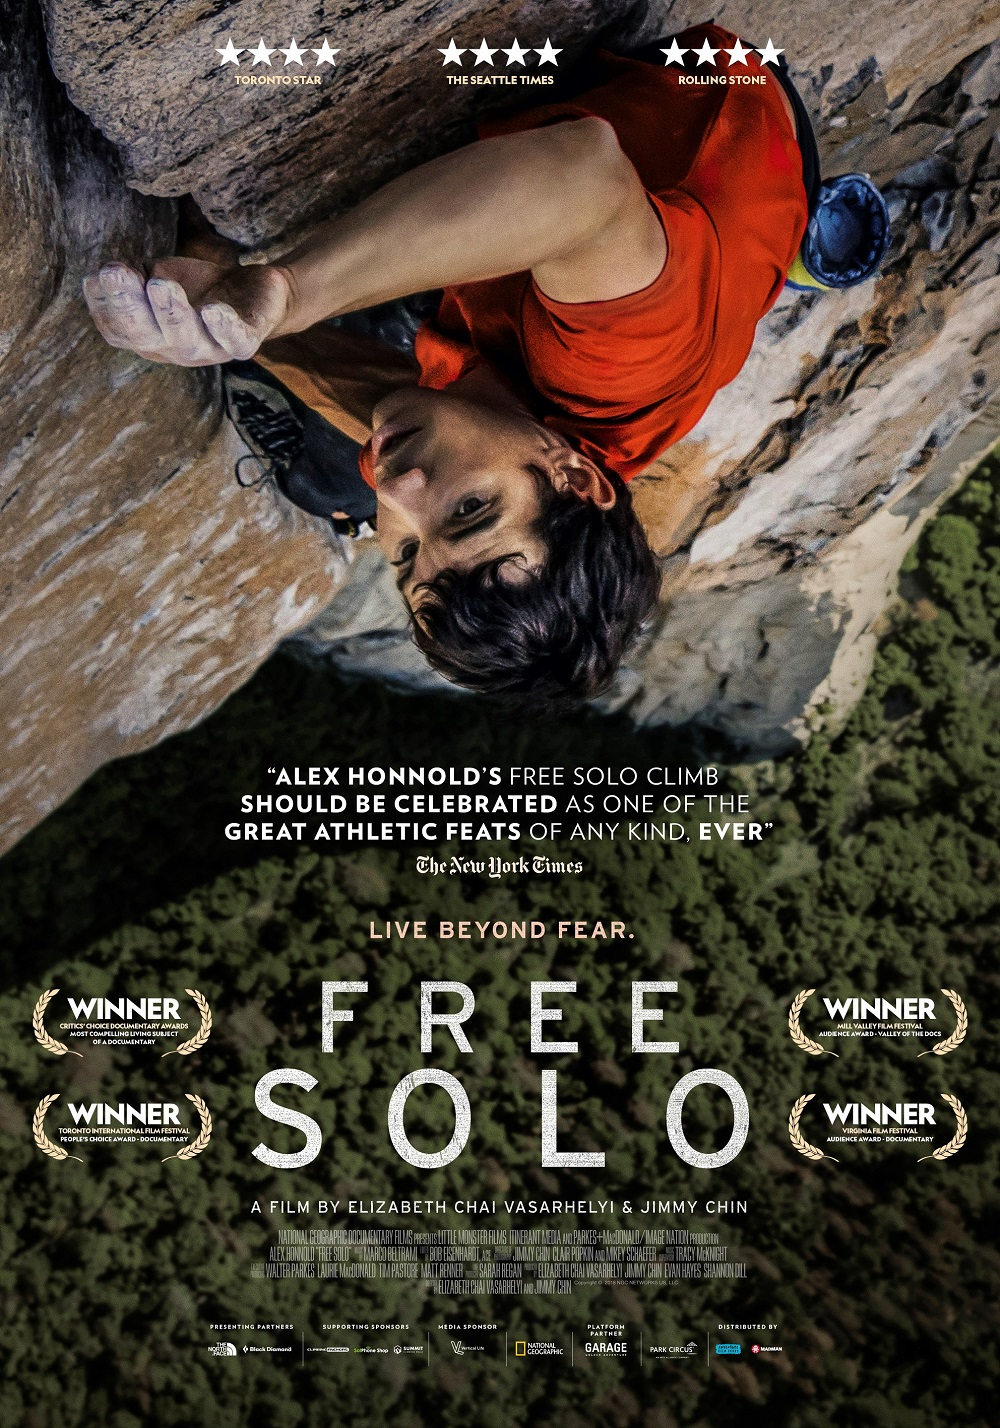 af18546e93d Jimmy Chin and Elizabeth Chai Vasarhelyi documentary Free Solo